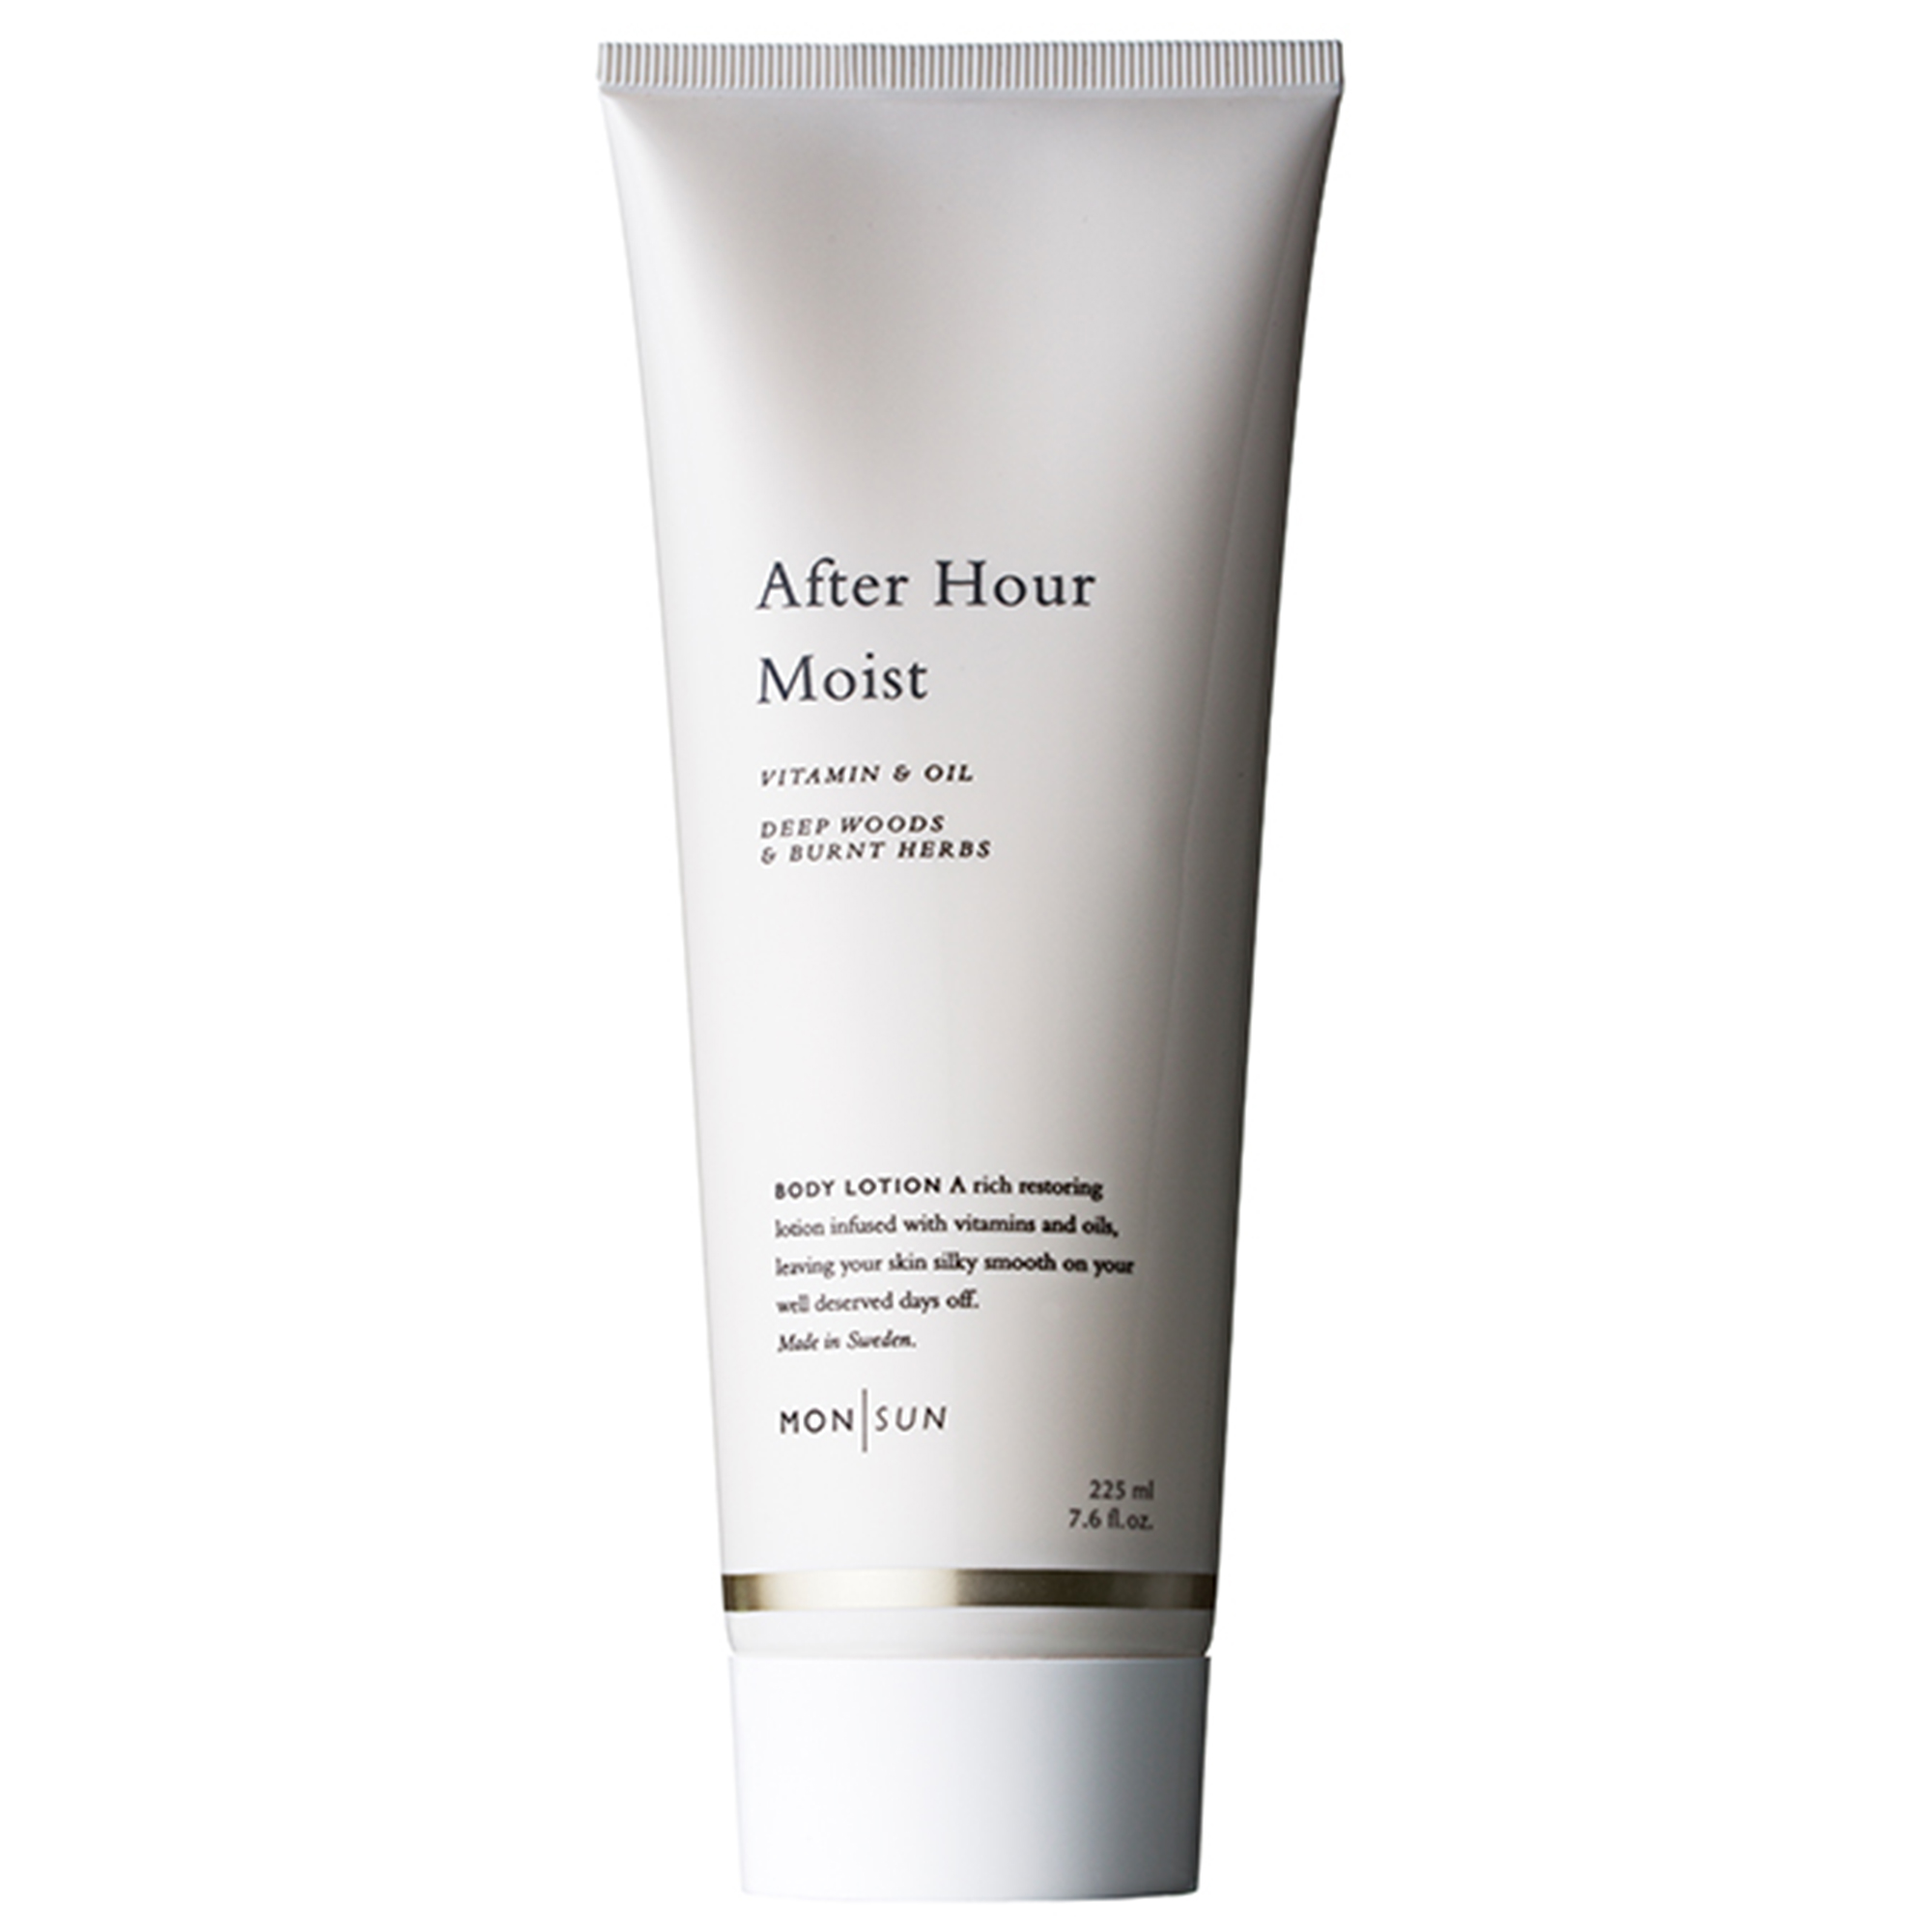 After Hour Moist Vitamin & Oil Body Lotion 225 ml